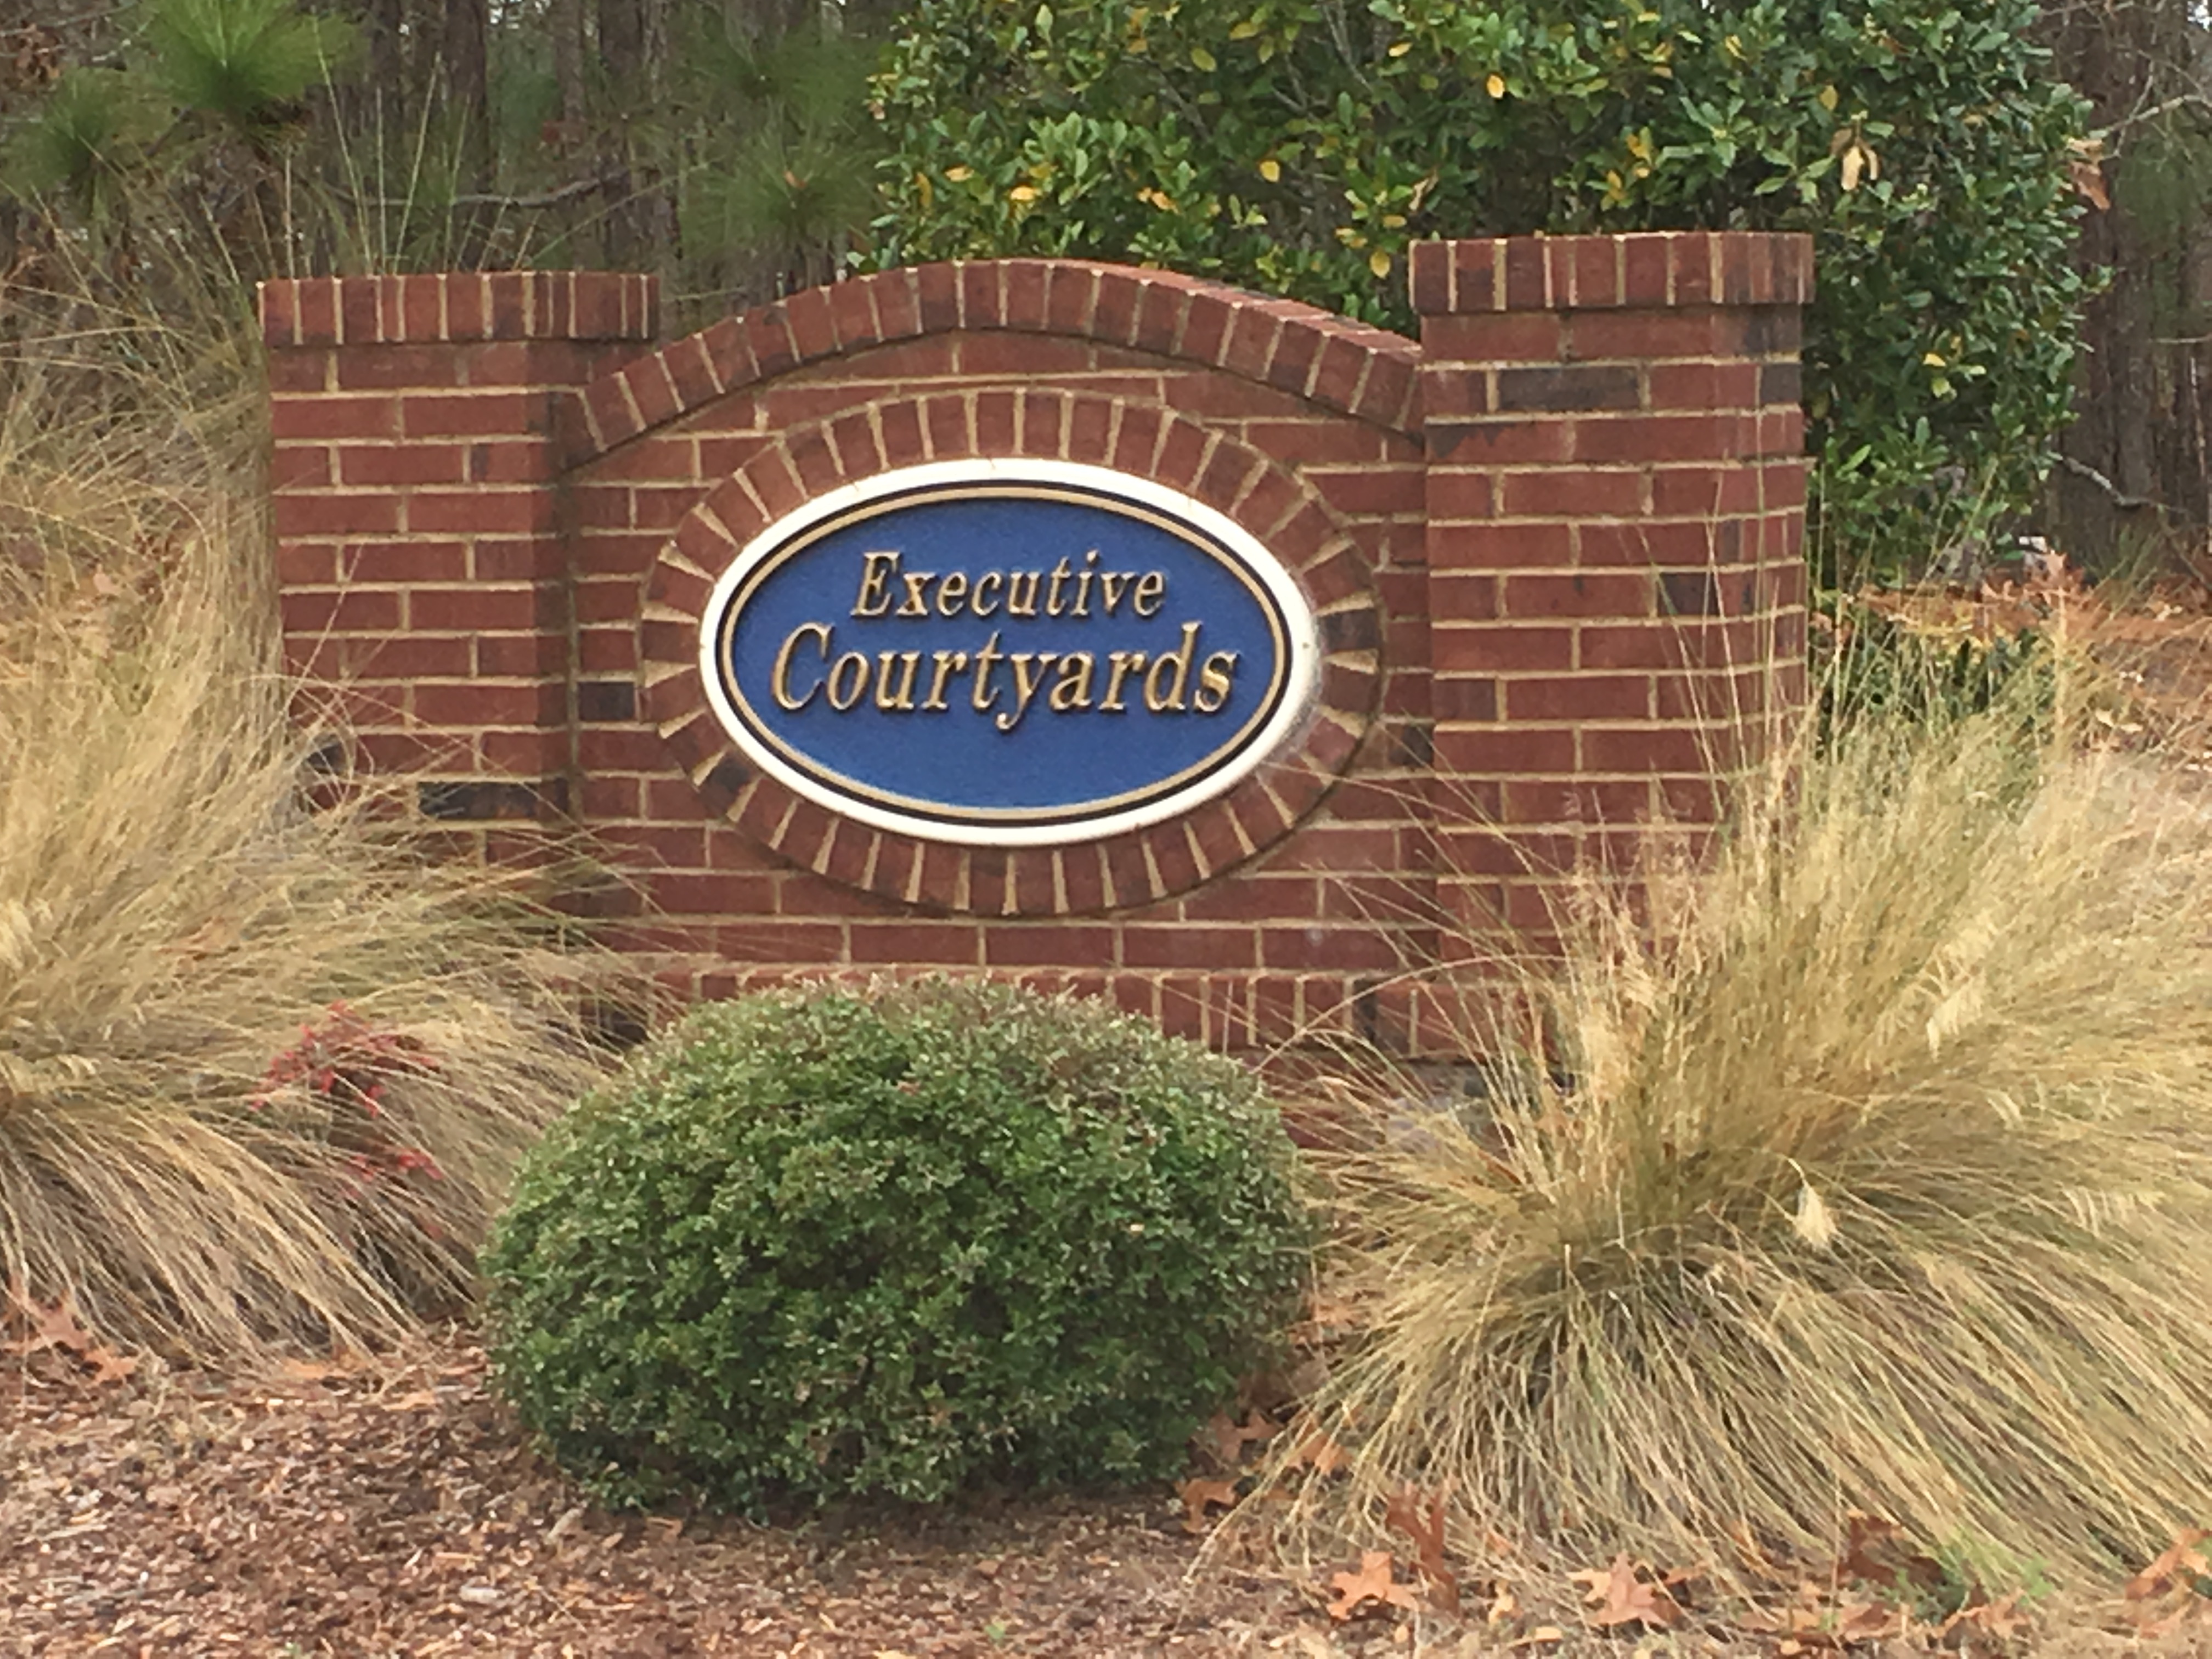 Columbia, SC Homes for Sale in Lake Carolina Executive Courtyards